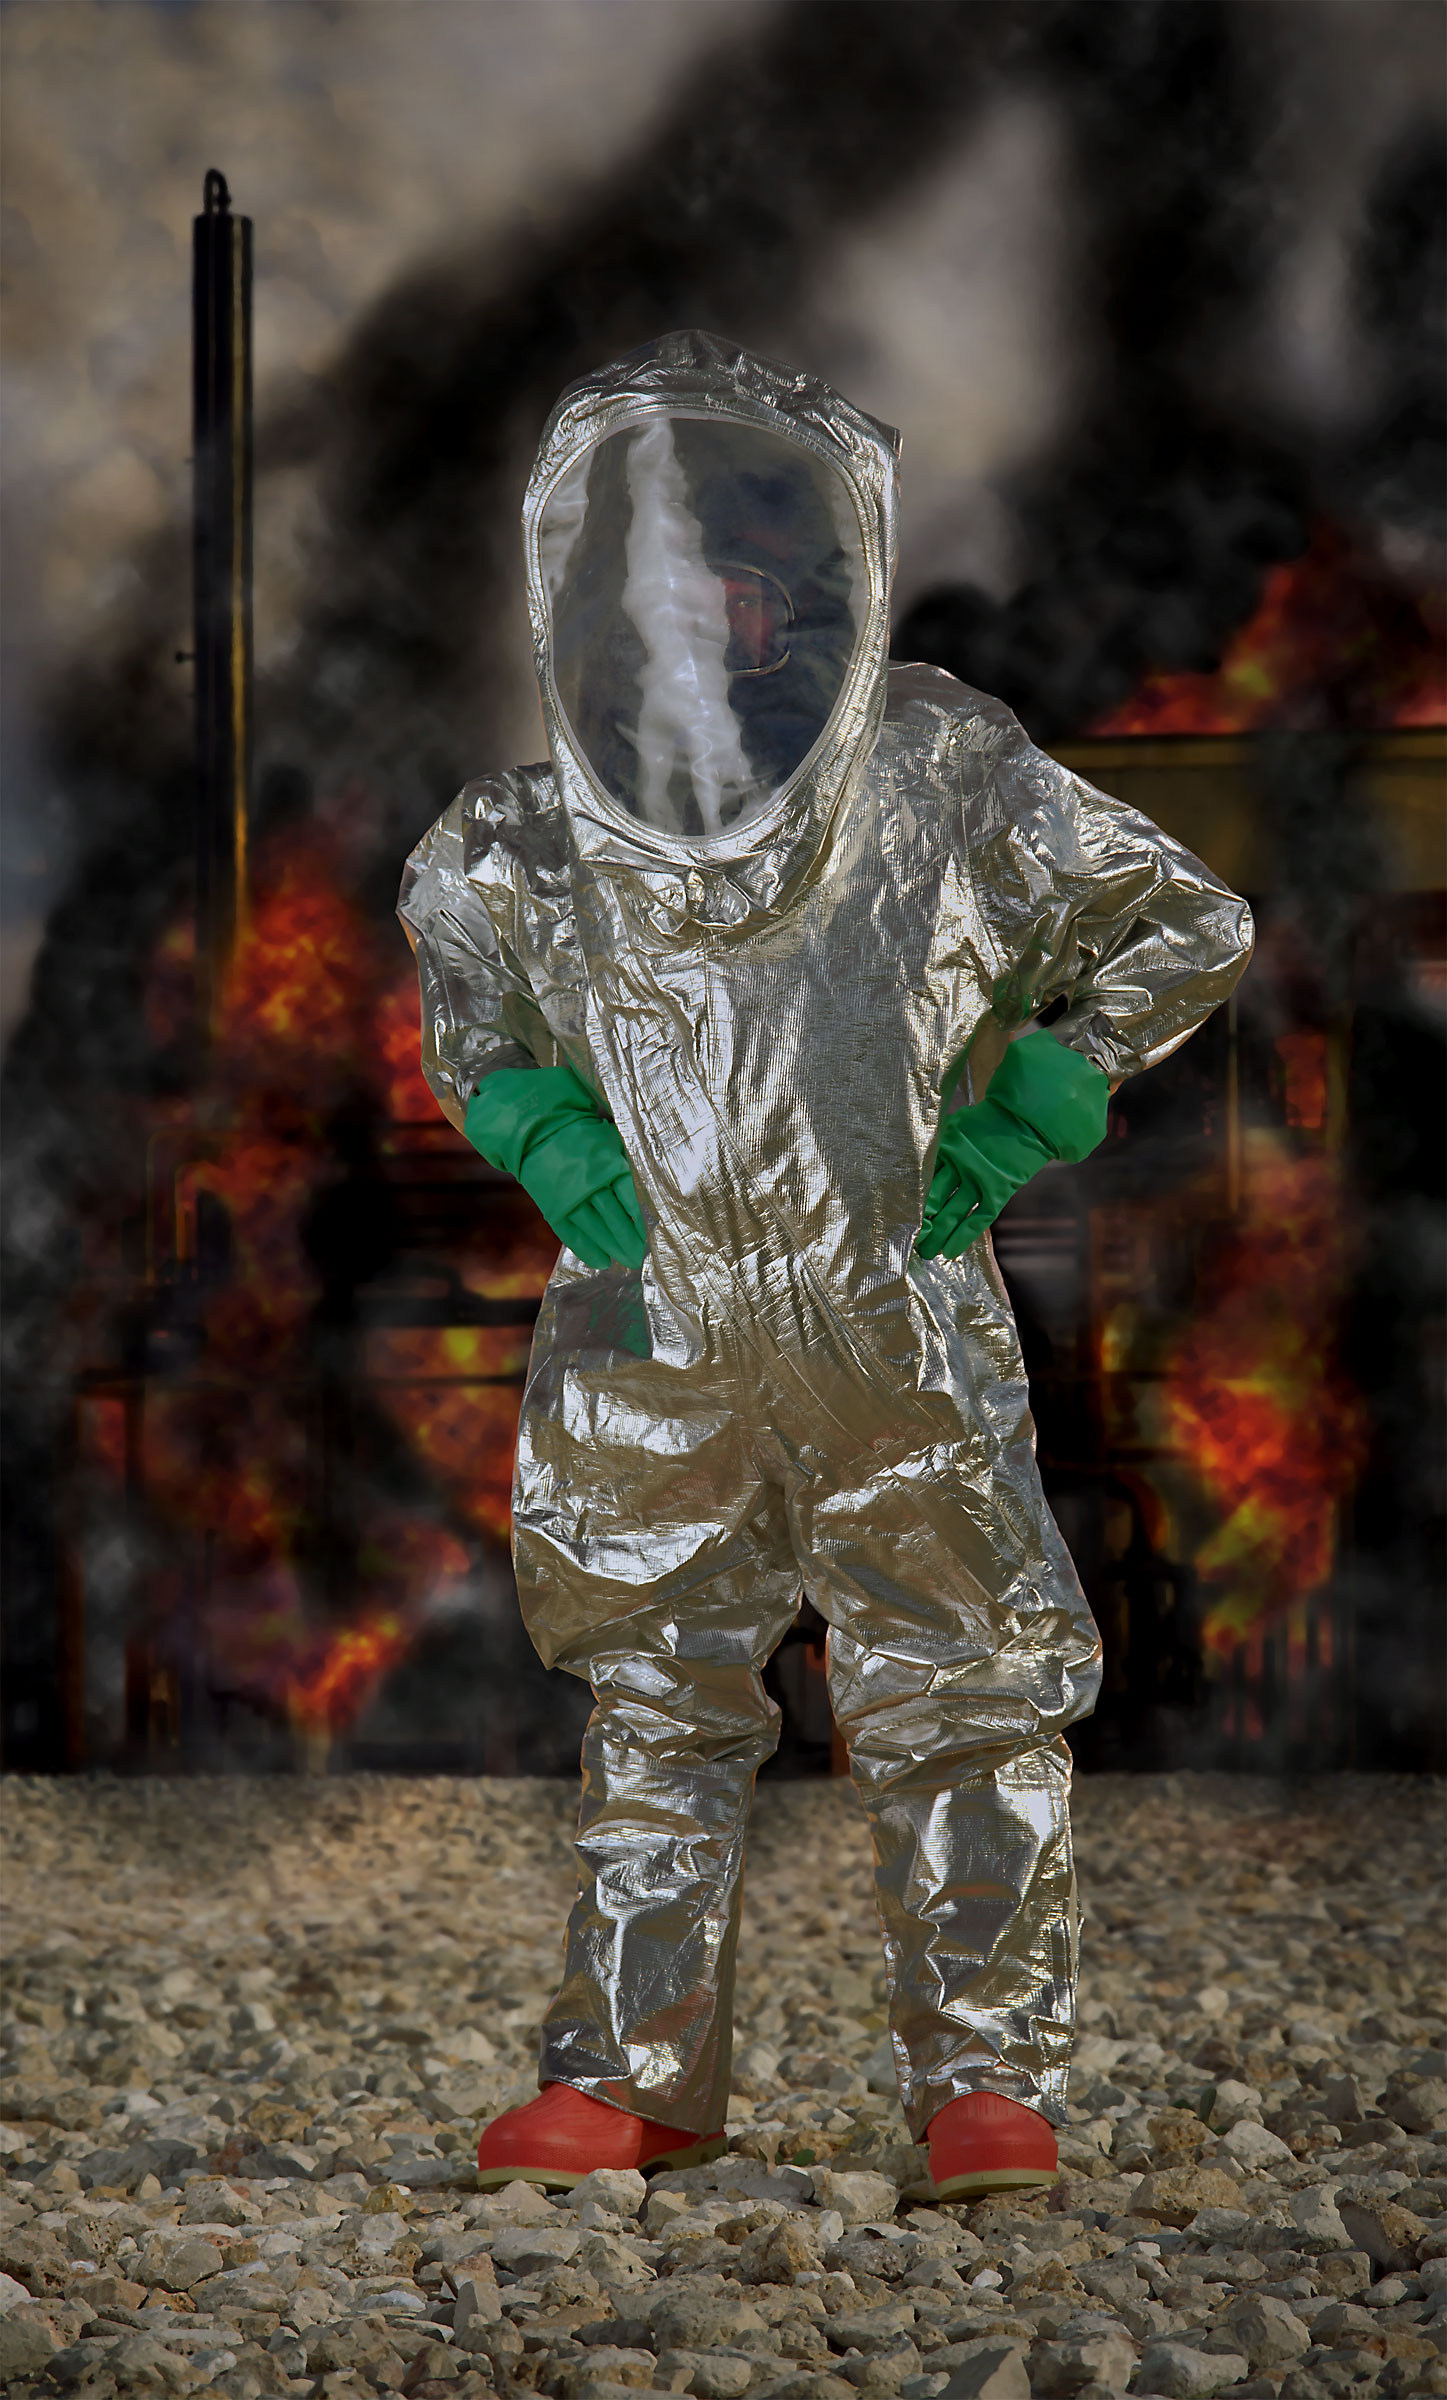 <p><em>Level A HAZMAT suit, aluminized (&#8220;Disaster City&#8221;, National Emergency Response and Rescue Training Center, Texas Engineering and Extension Service, College Station, Texas)</em>, 2004, pigmented inkjet on canvas with varnish, 63X38 inches</p>